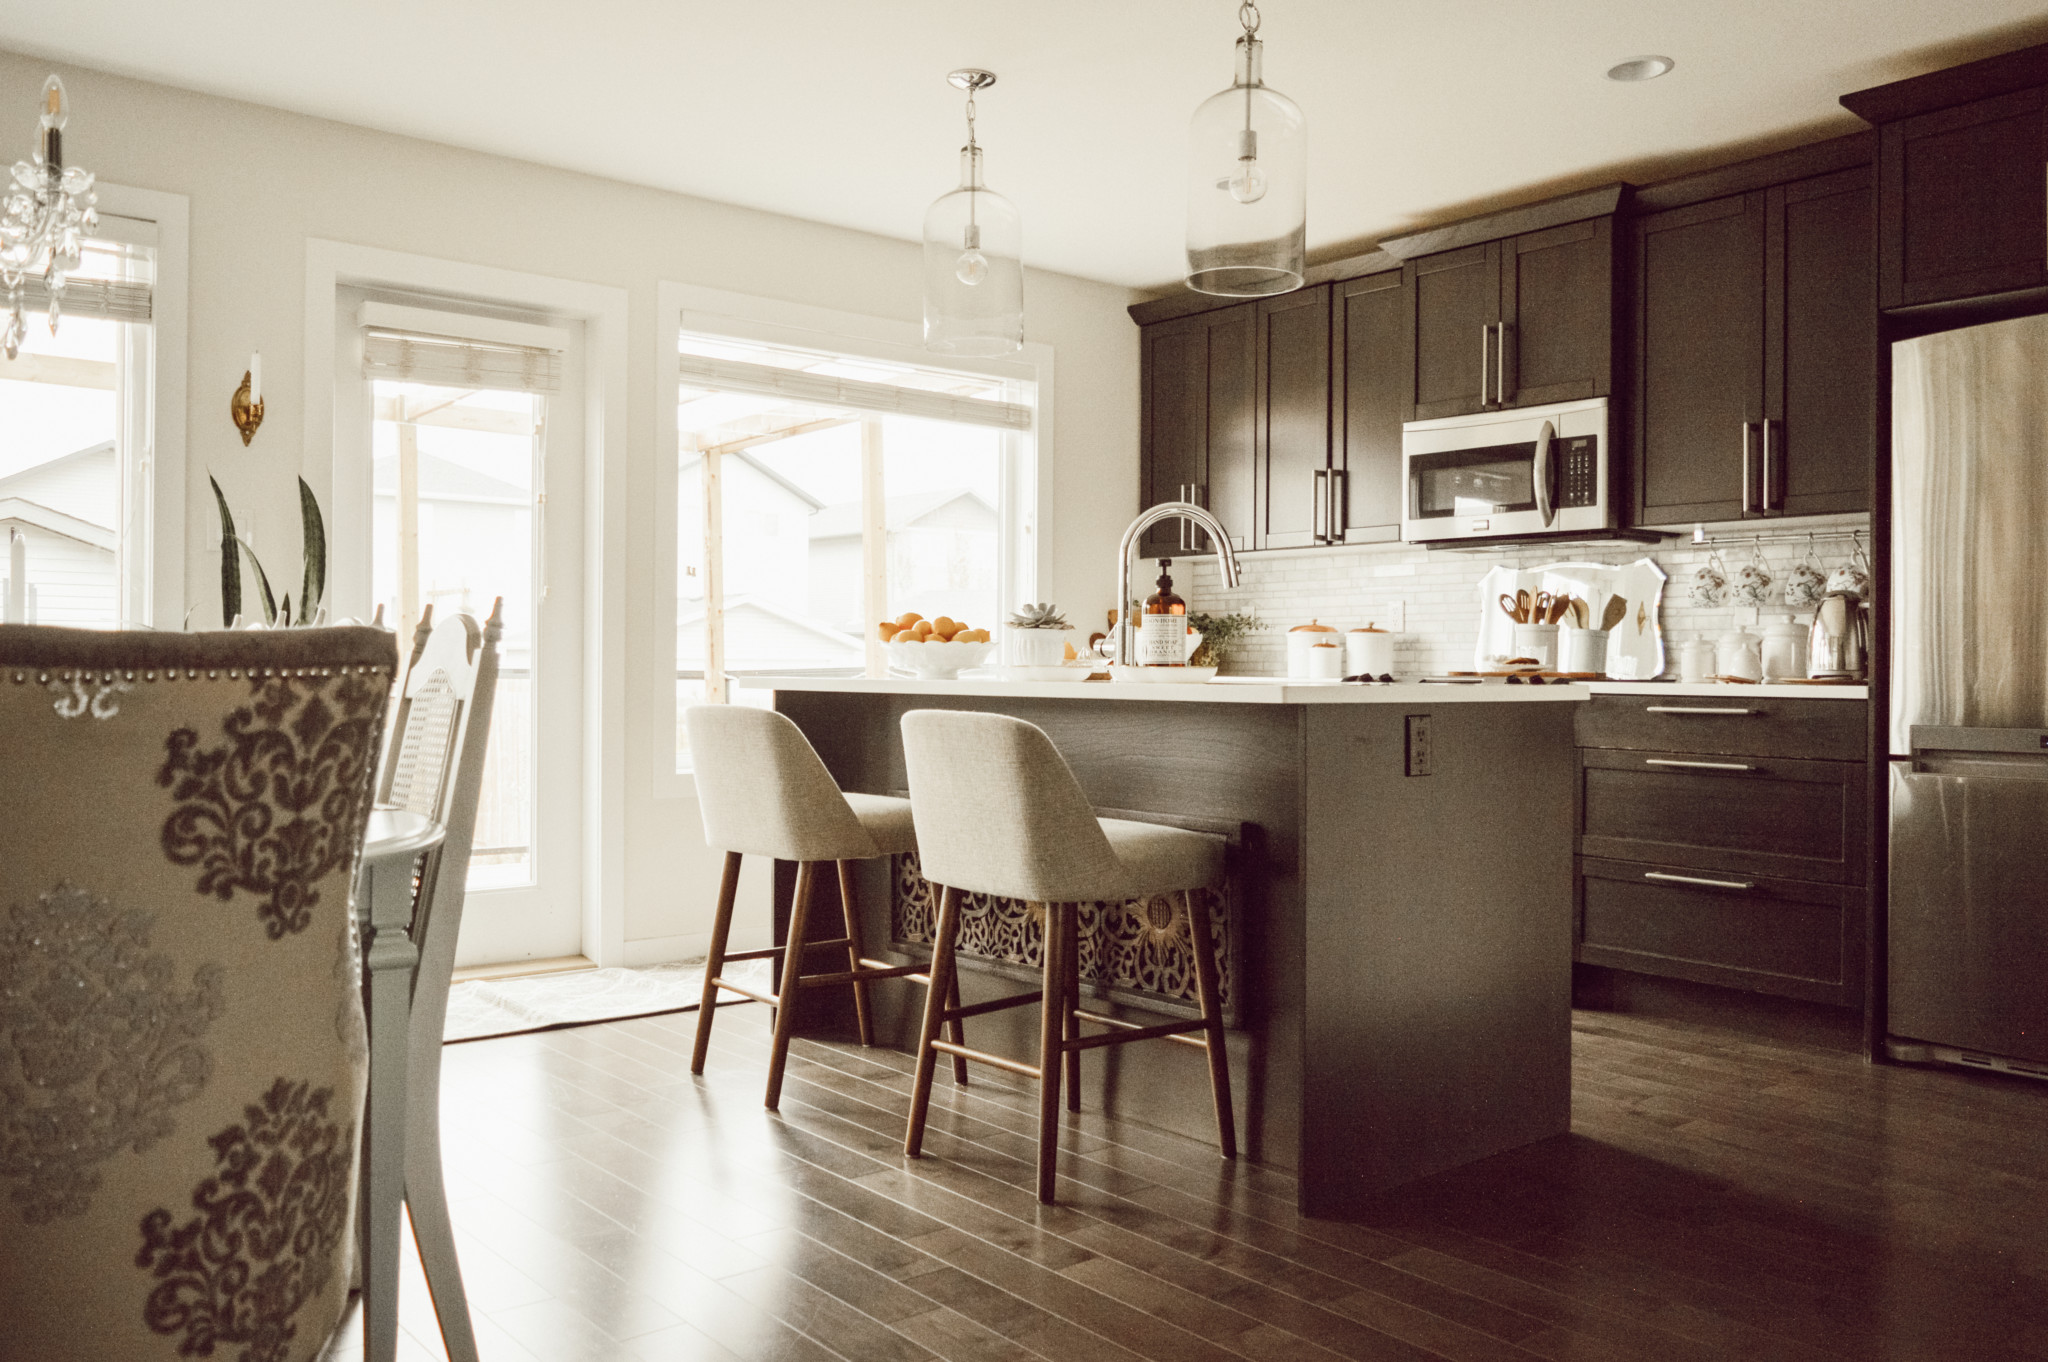 White Kitchens are Preferred Feng Shui